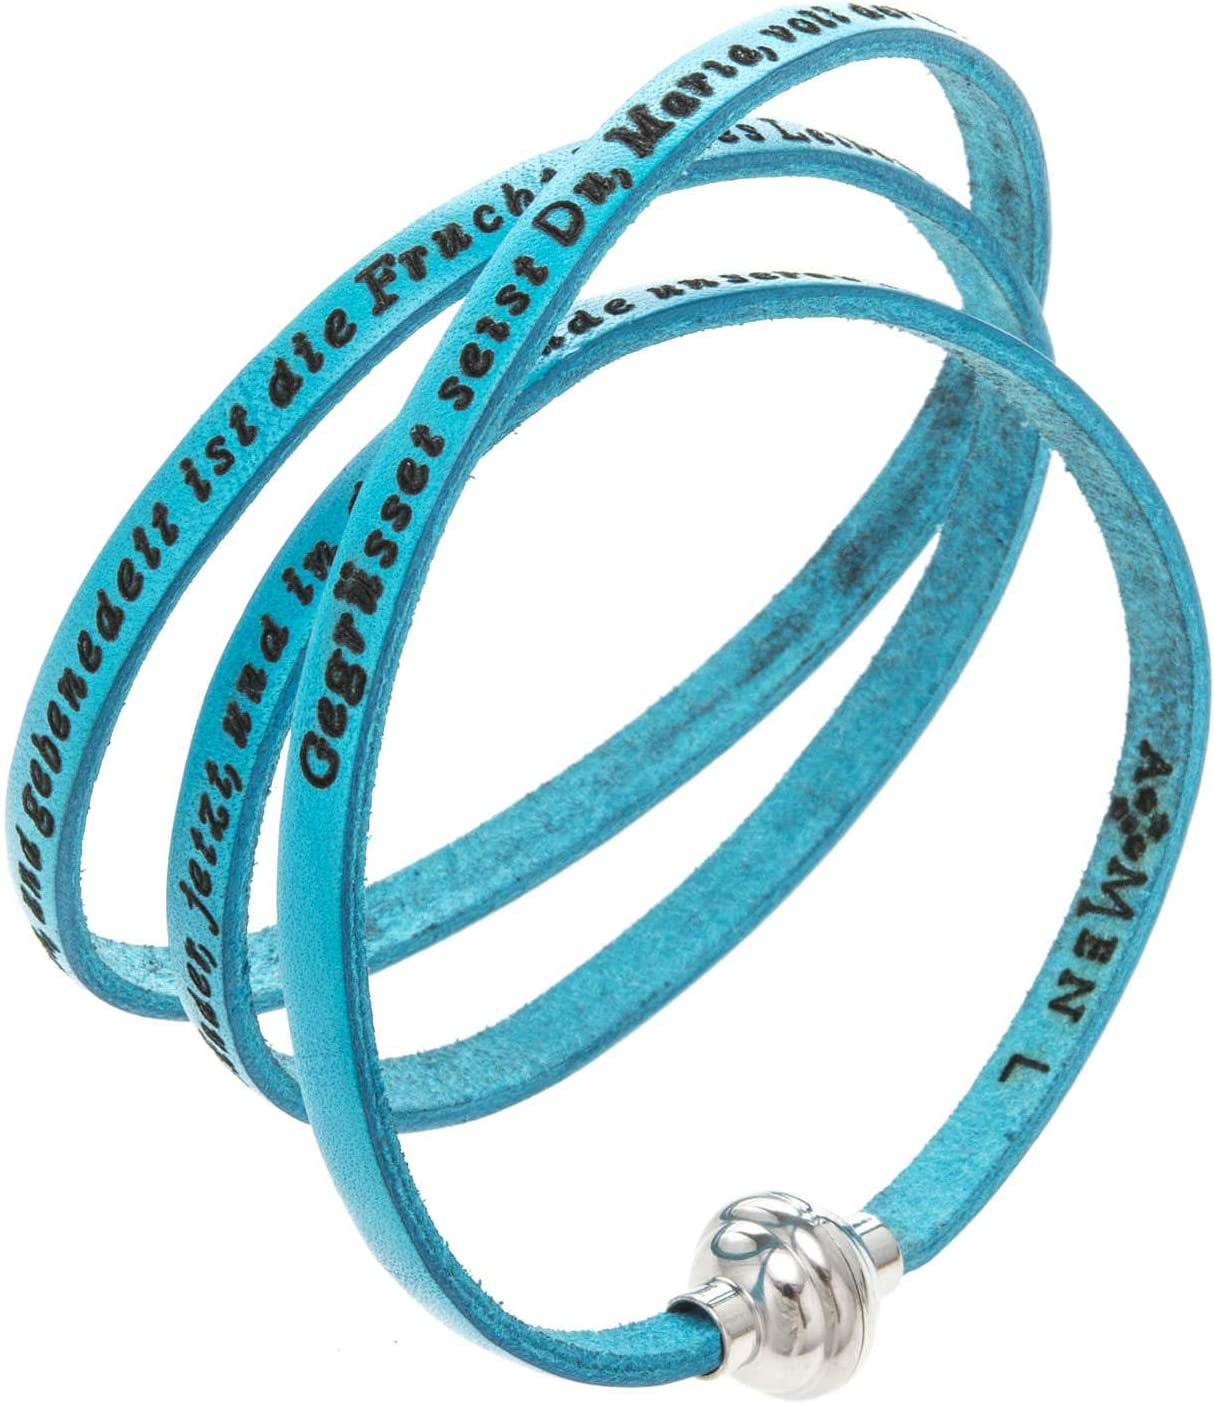 Amen Bracelet SEAL limited product in Turquoise Leather Hail Surprise price GER 23.64 cm 60 Mary i